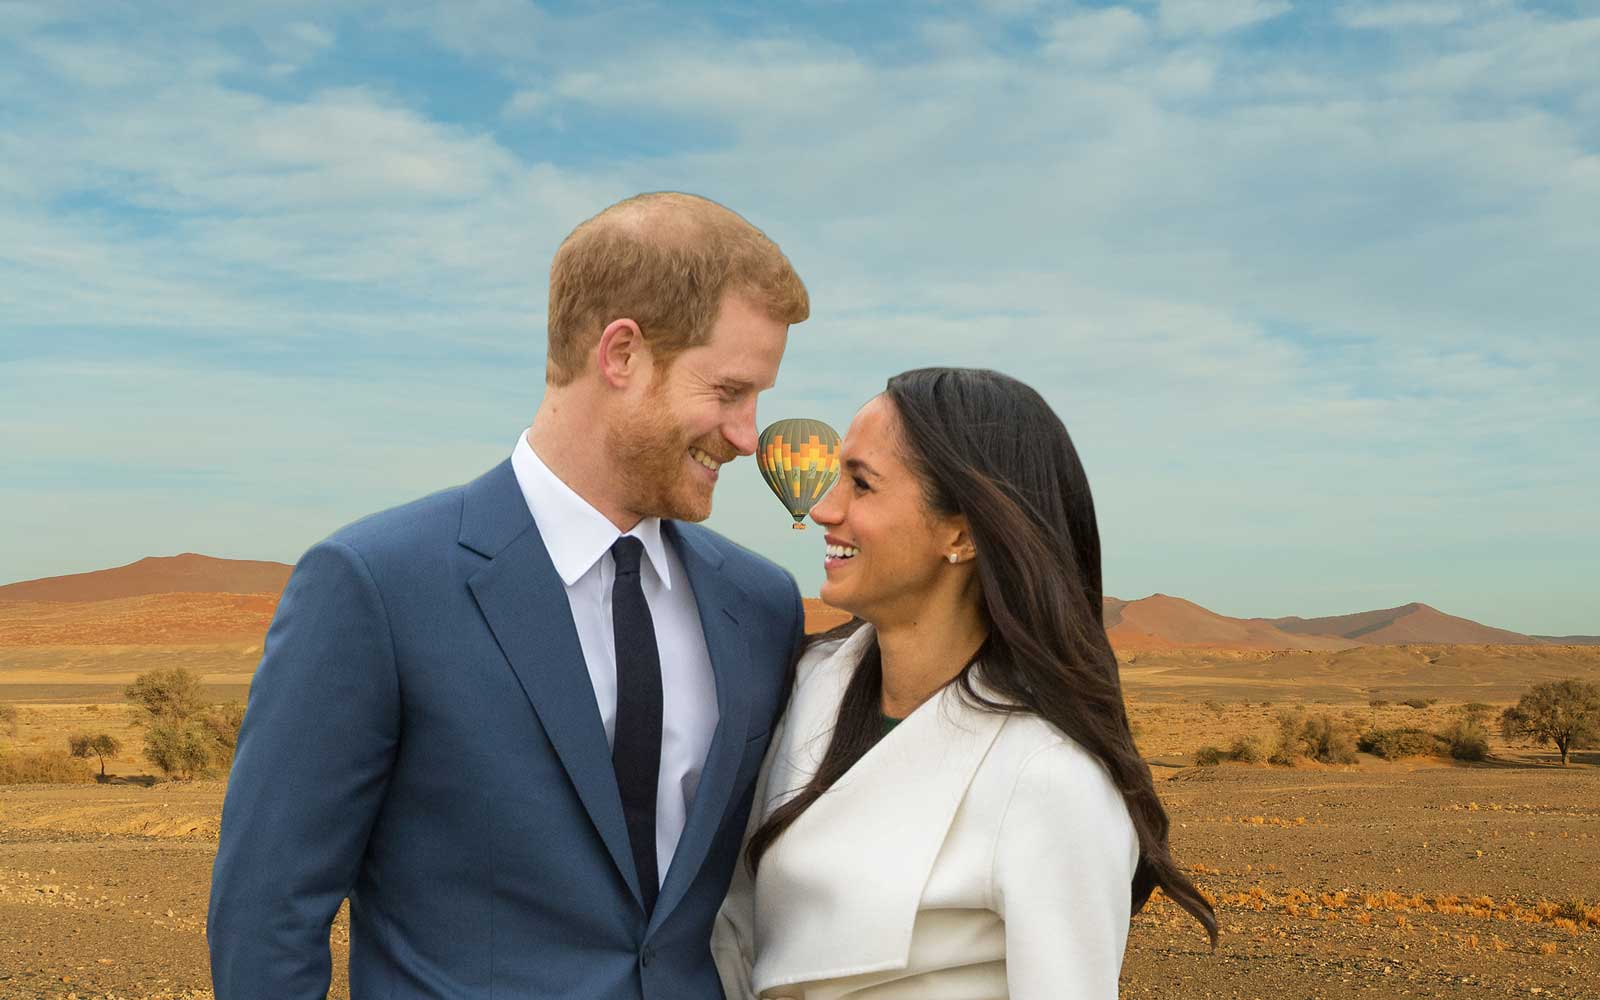 Prince Harry and Meghan Markle with Namibia behind